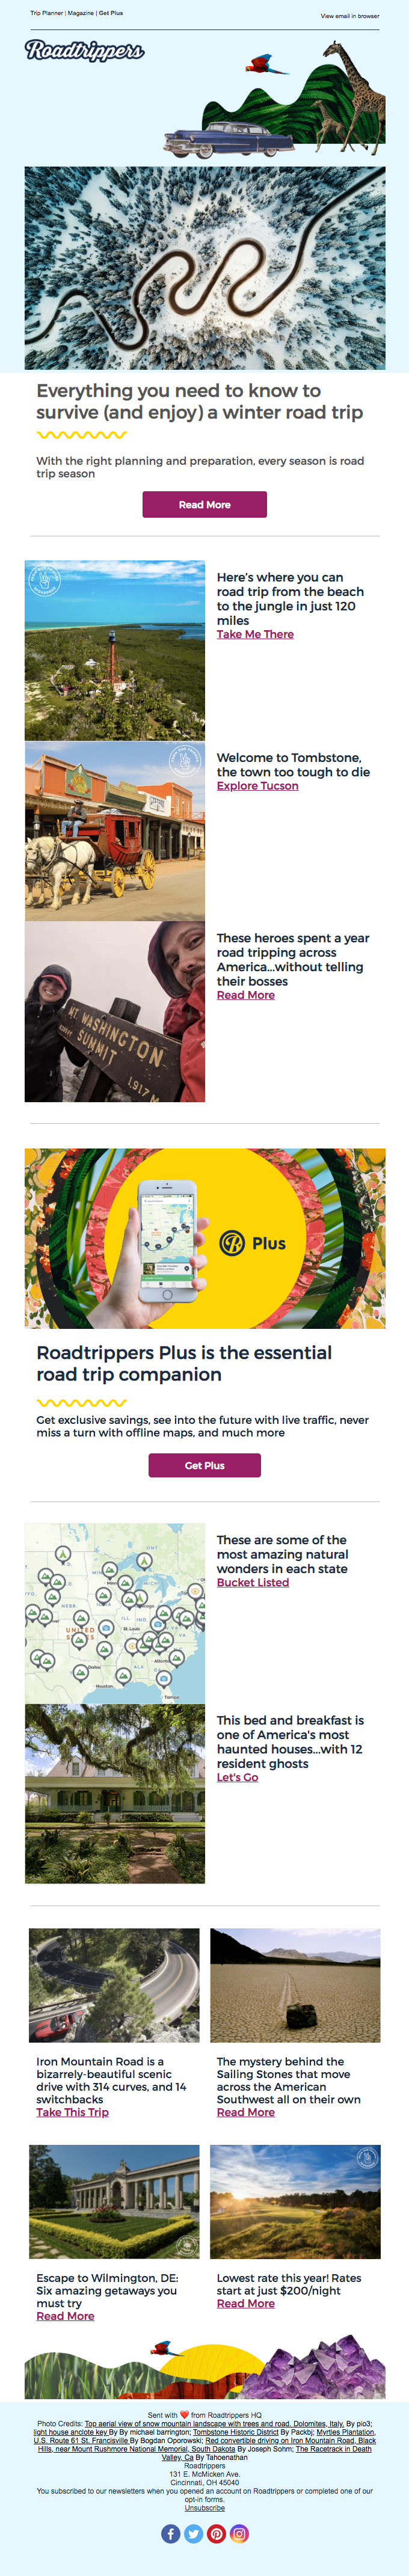 roadtrippers-email1